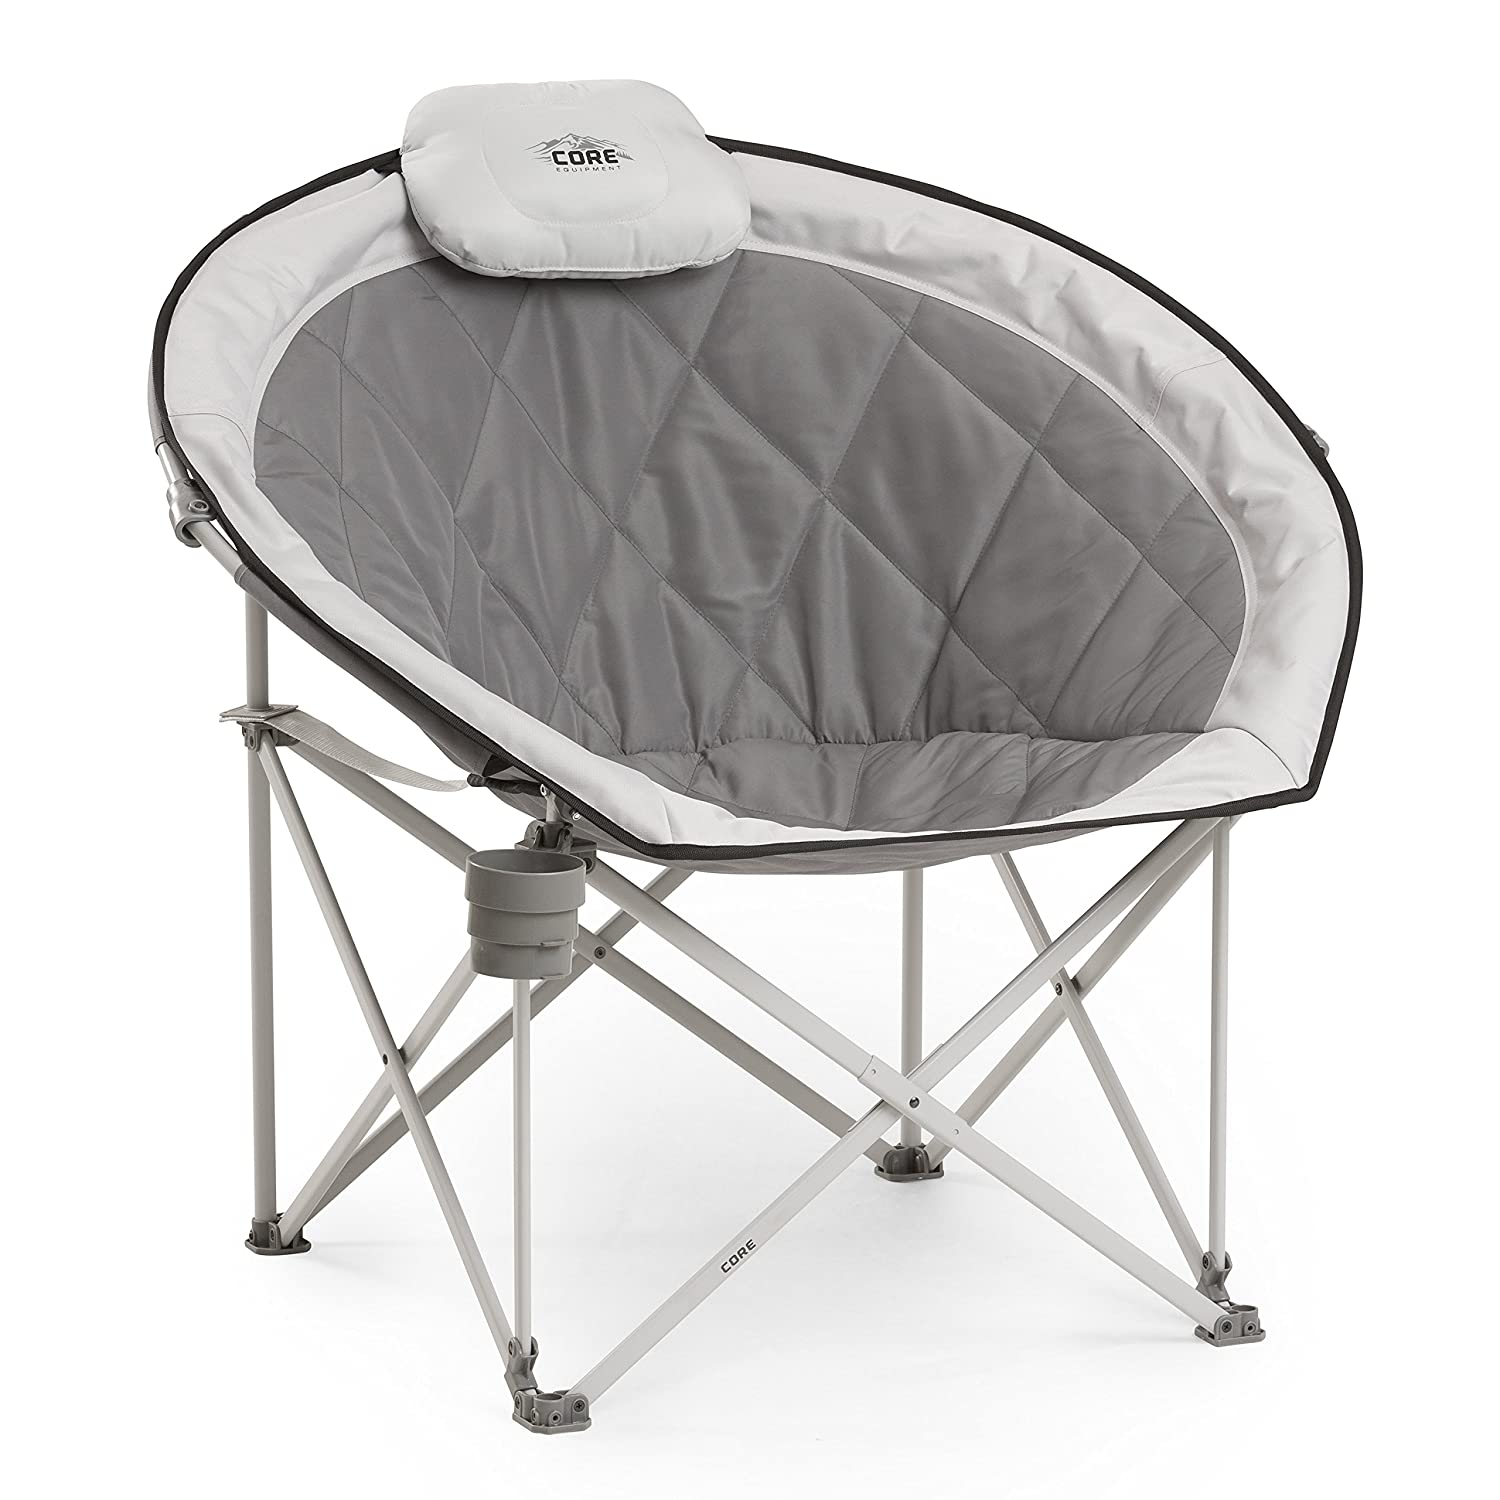 Amazon.com : Core Equipment Folding Oversized Padded Moon Round Saucer Chair  With Carry Bag, Gray : Sports U0026 Outdoors